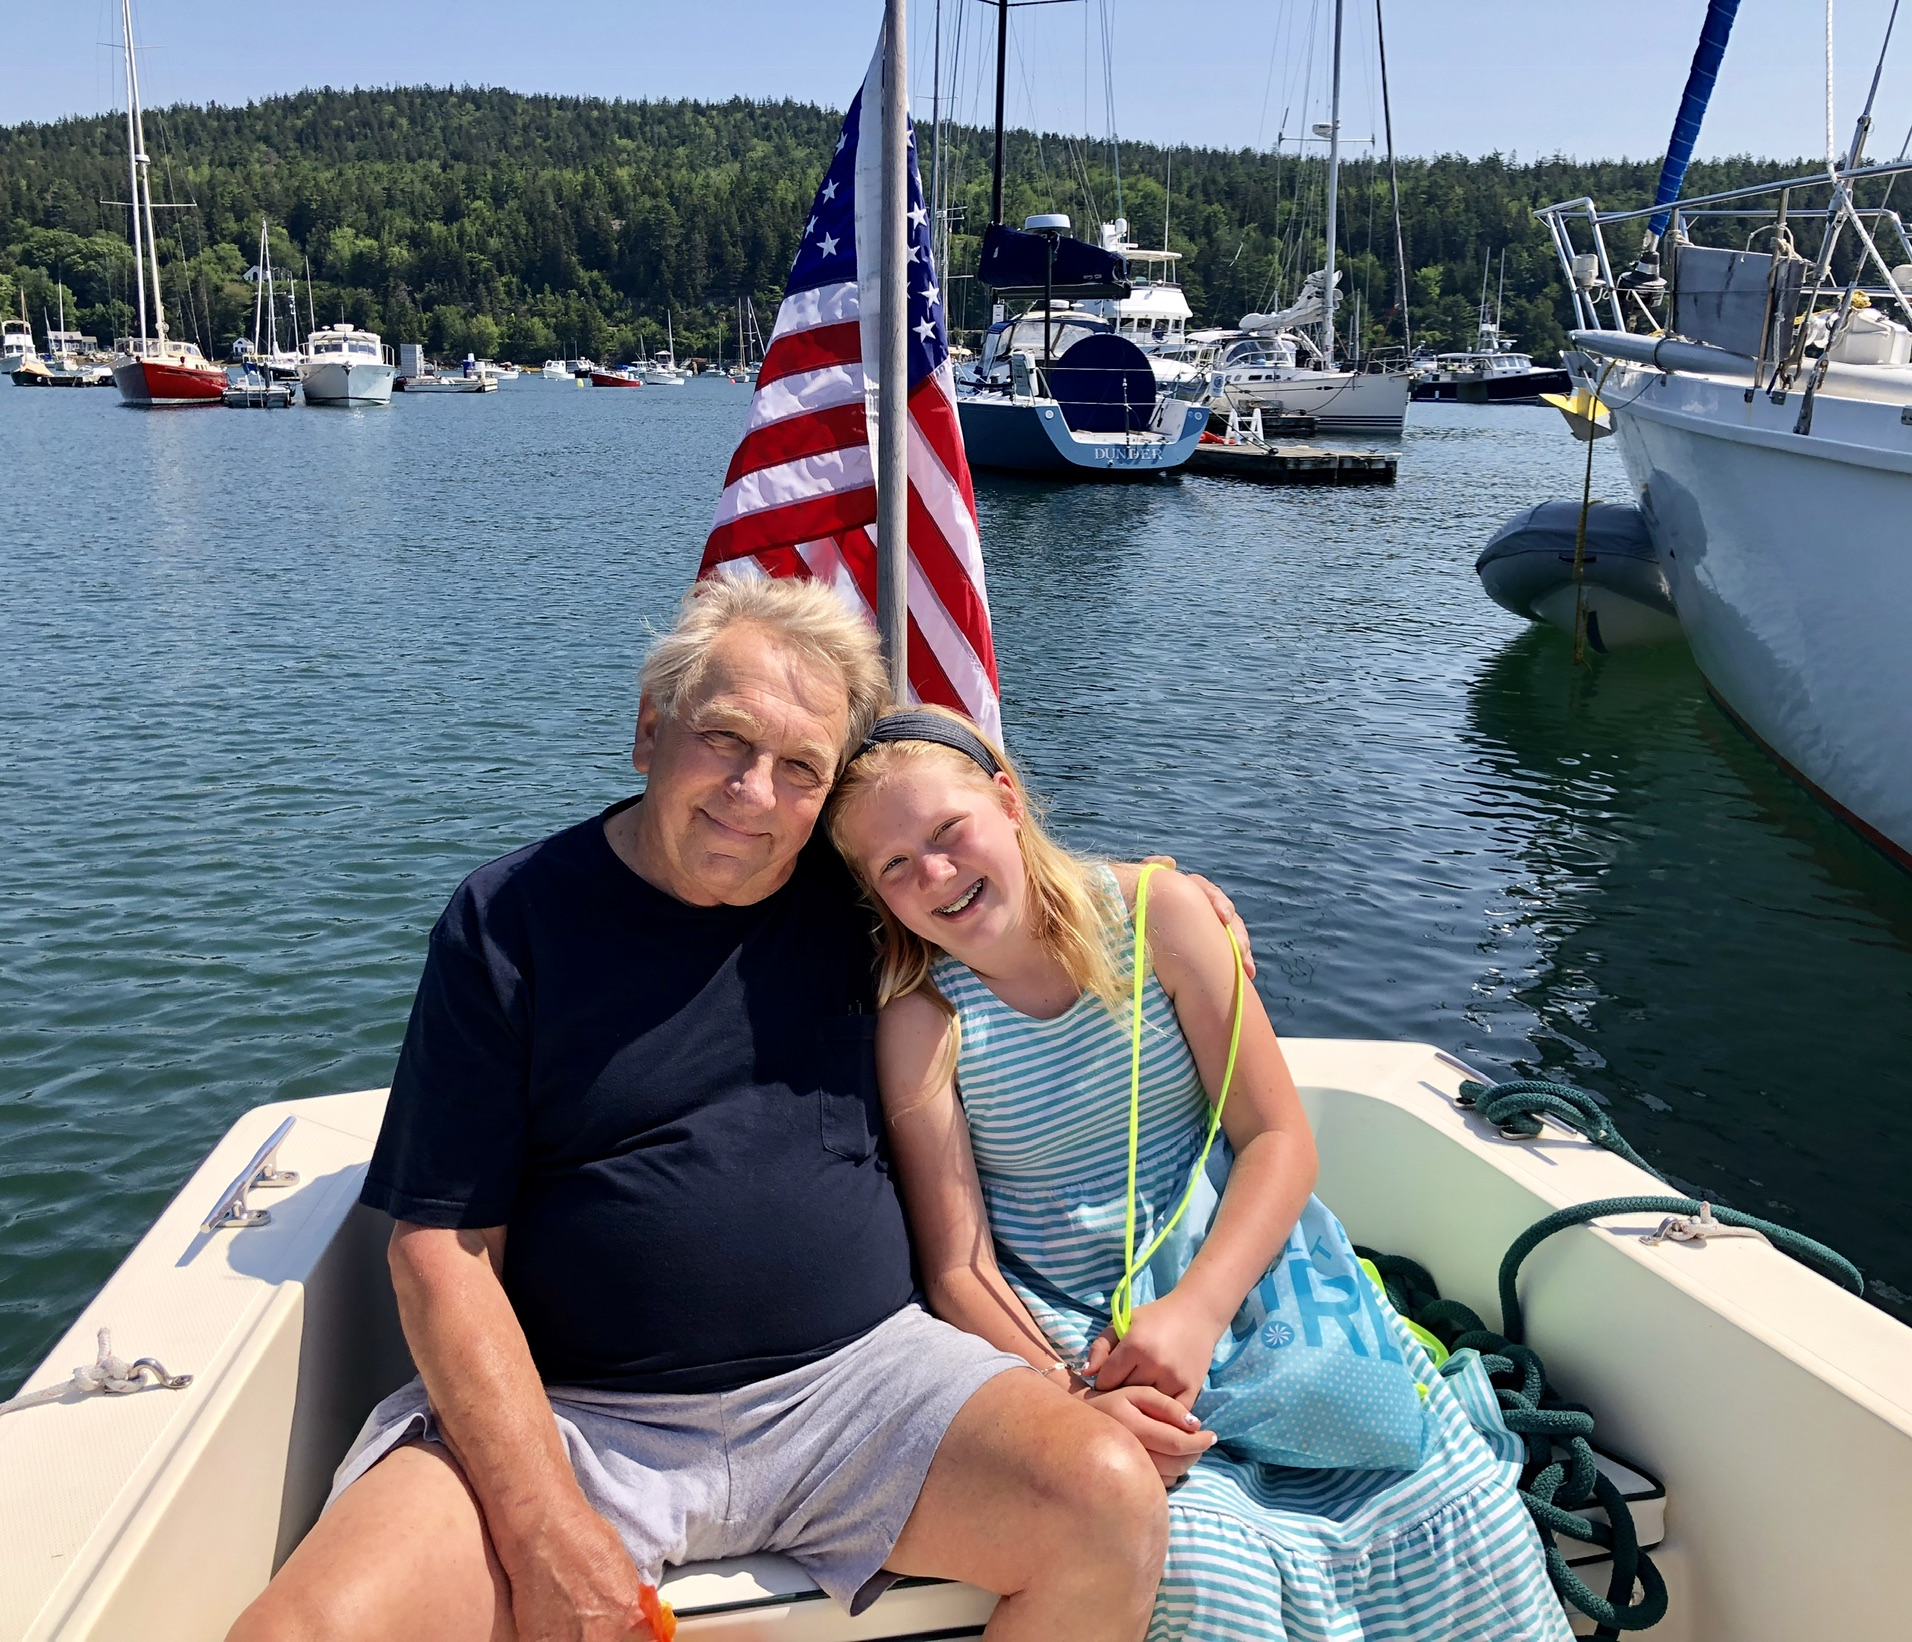 Audrey and Gramps in the launch